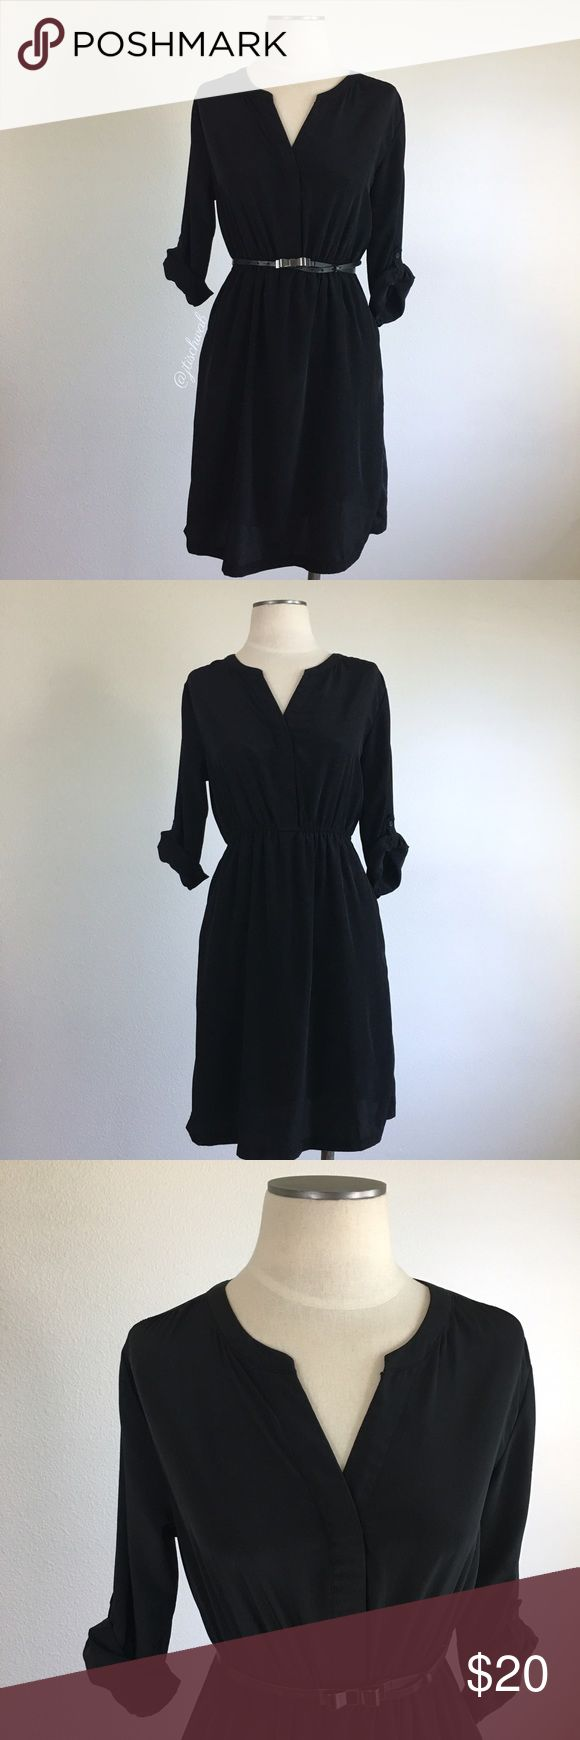 "Old Navy- Black Tab Sleeve Shirtdress SZ M Old Navy- Black Tab Sleeve Shirtdress SZ M. Hidden buttons (3), slips over the head. Skirt is lined. Side pockets. Sleeves are 3/4 & roll up, fastens w/a button. Dress is 36"" long (I'm 5'7"" and it hits past my knees). Armpit-armpit measures about 18"" across laid flat. Elastic waist measures about 13.5"" across unstretched. Fabric is a smooth substantial material (not see through). 100% Polyester. Preloved but still great condition. Belt pictured is…"